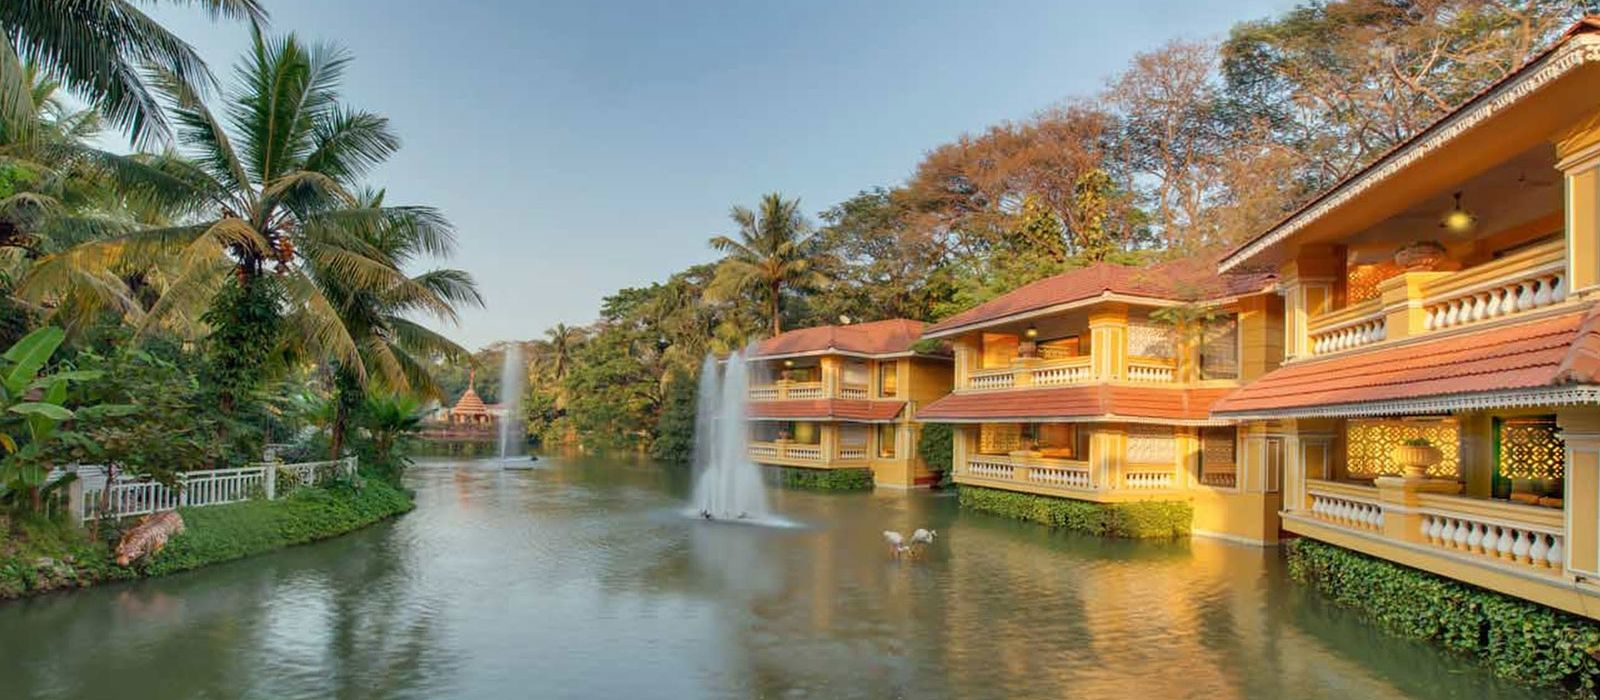 Hotel Mayfair Lagoon Ostindien